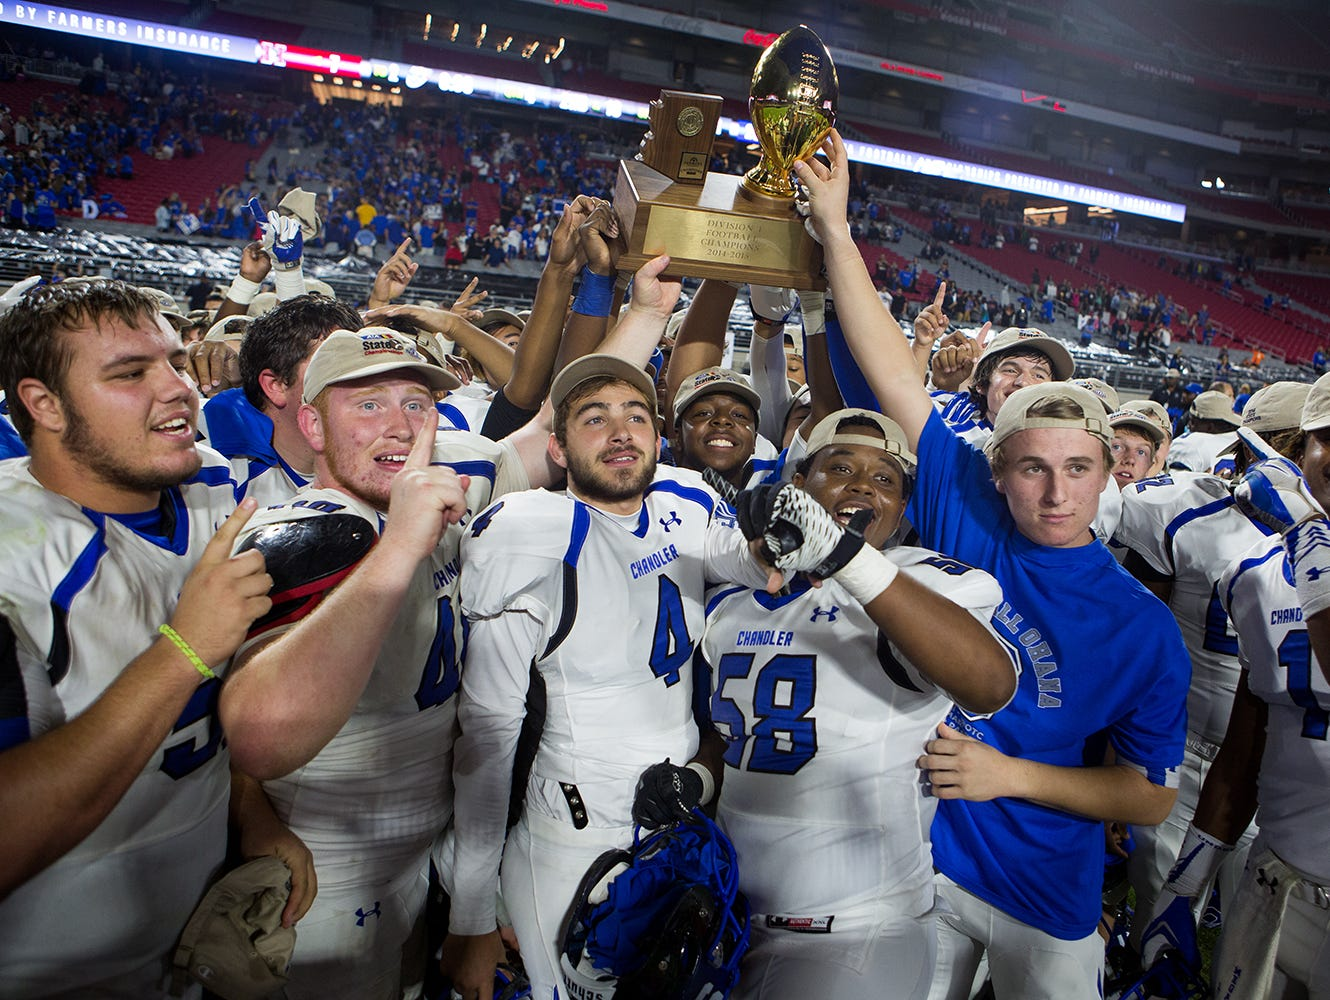 The Chandler high school football team celebrates at the University of Phoenix Stadium after their win over the Hamilton Huskies at the division 1 high school football state championships November 28, 2014 in Glendale.